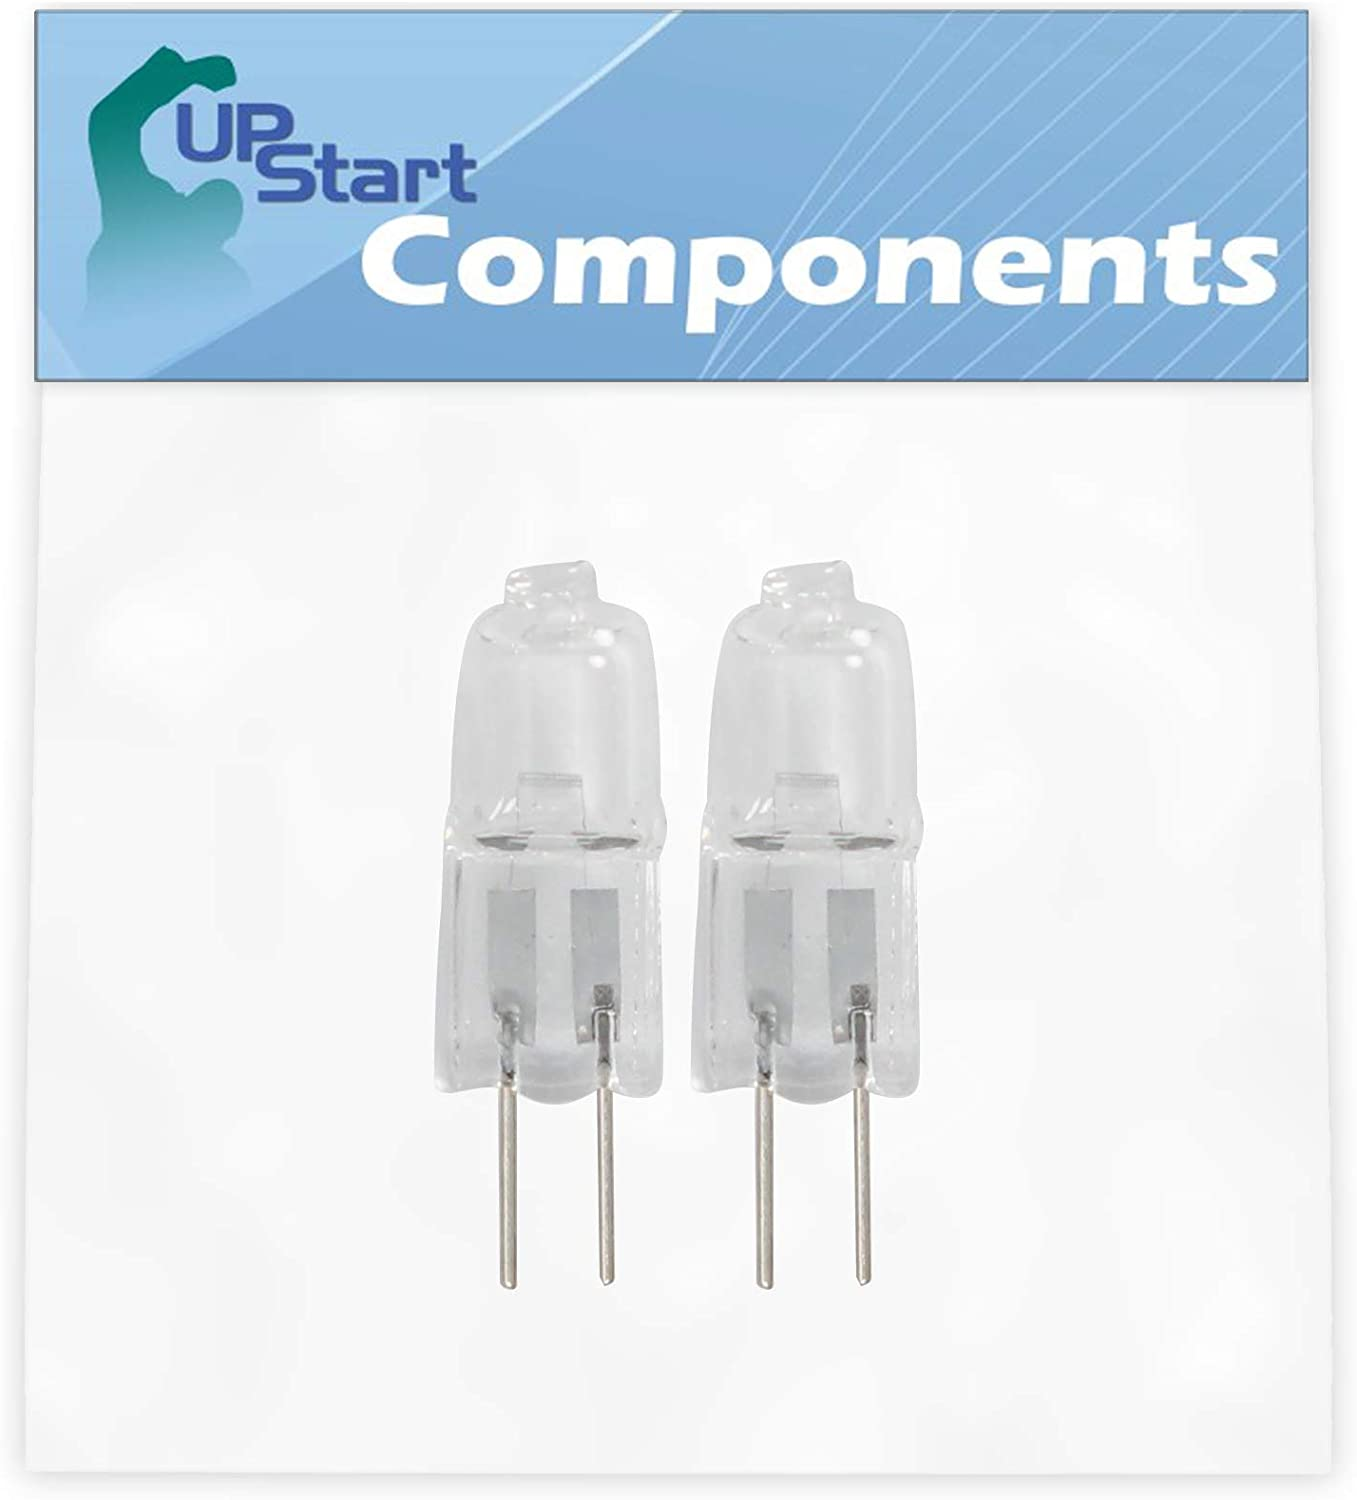 2-Pack WP4452164 Oven Light Bargain Quality inspection sale Bulb Part Number AP6 Replacement for